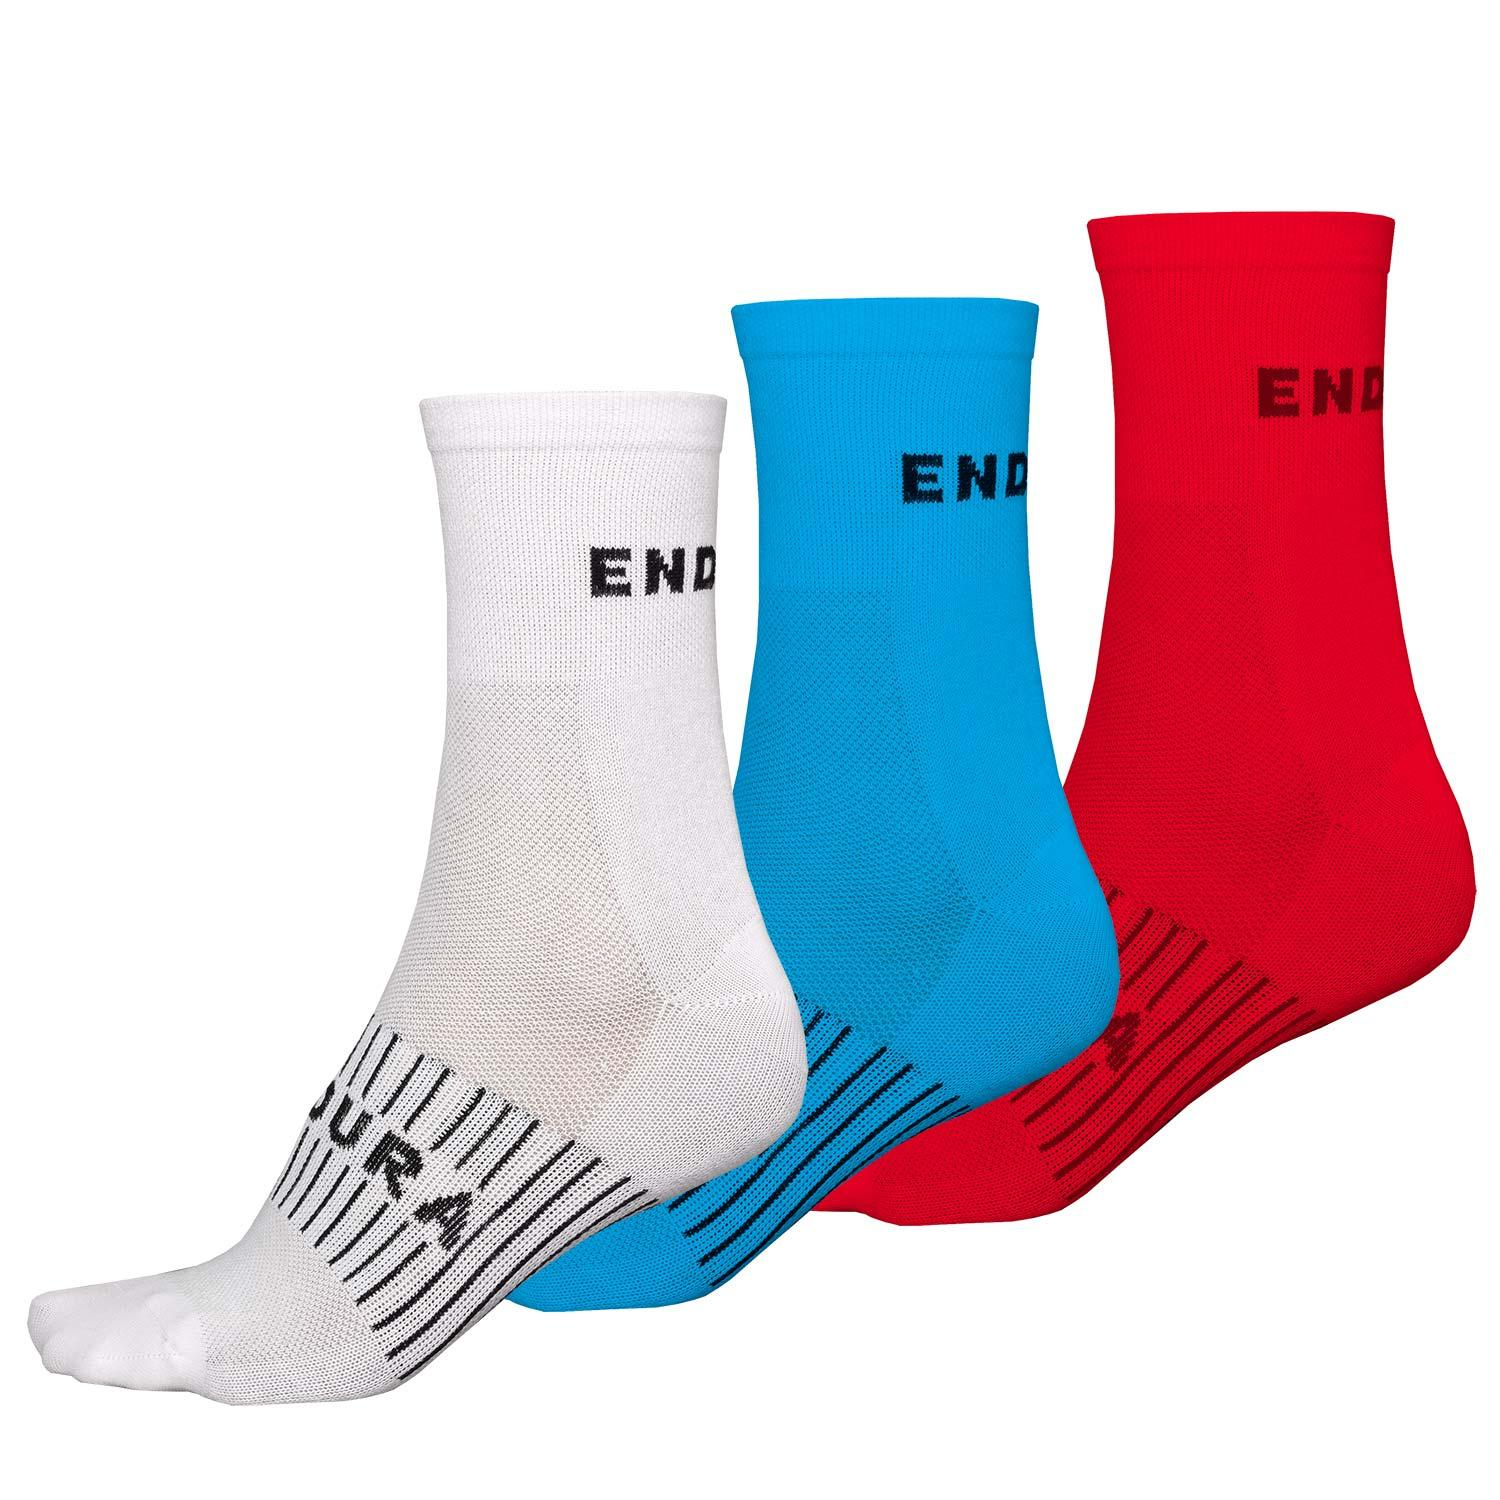 | Endura Fietssokken zomer 3-pack Heren Wit + Blauw + Rood - Coolmax Race Sock (Triple Pack) White Blue Red